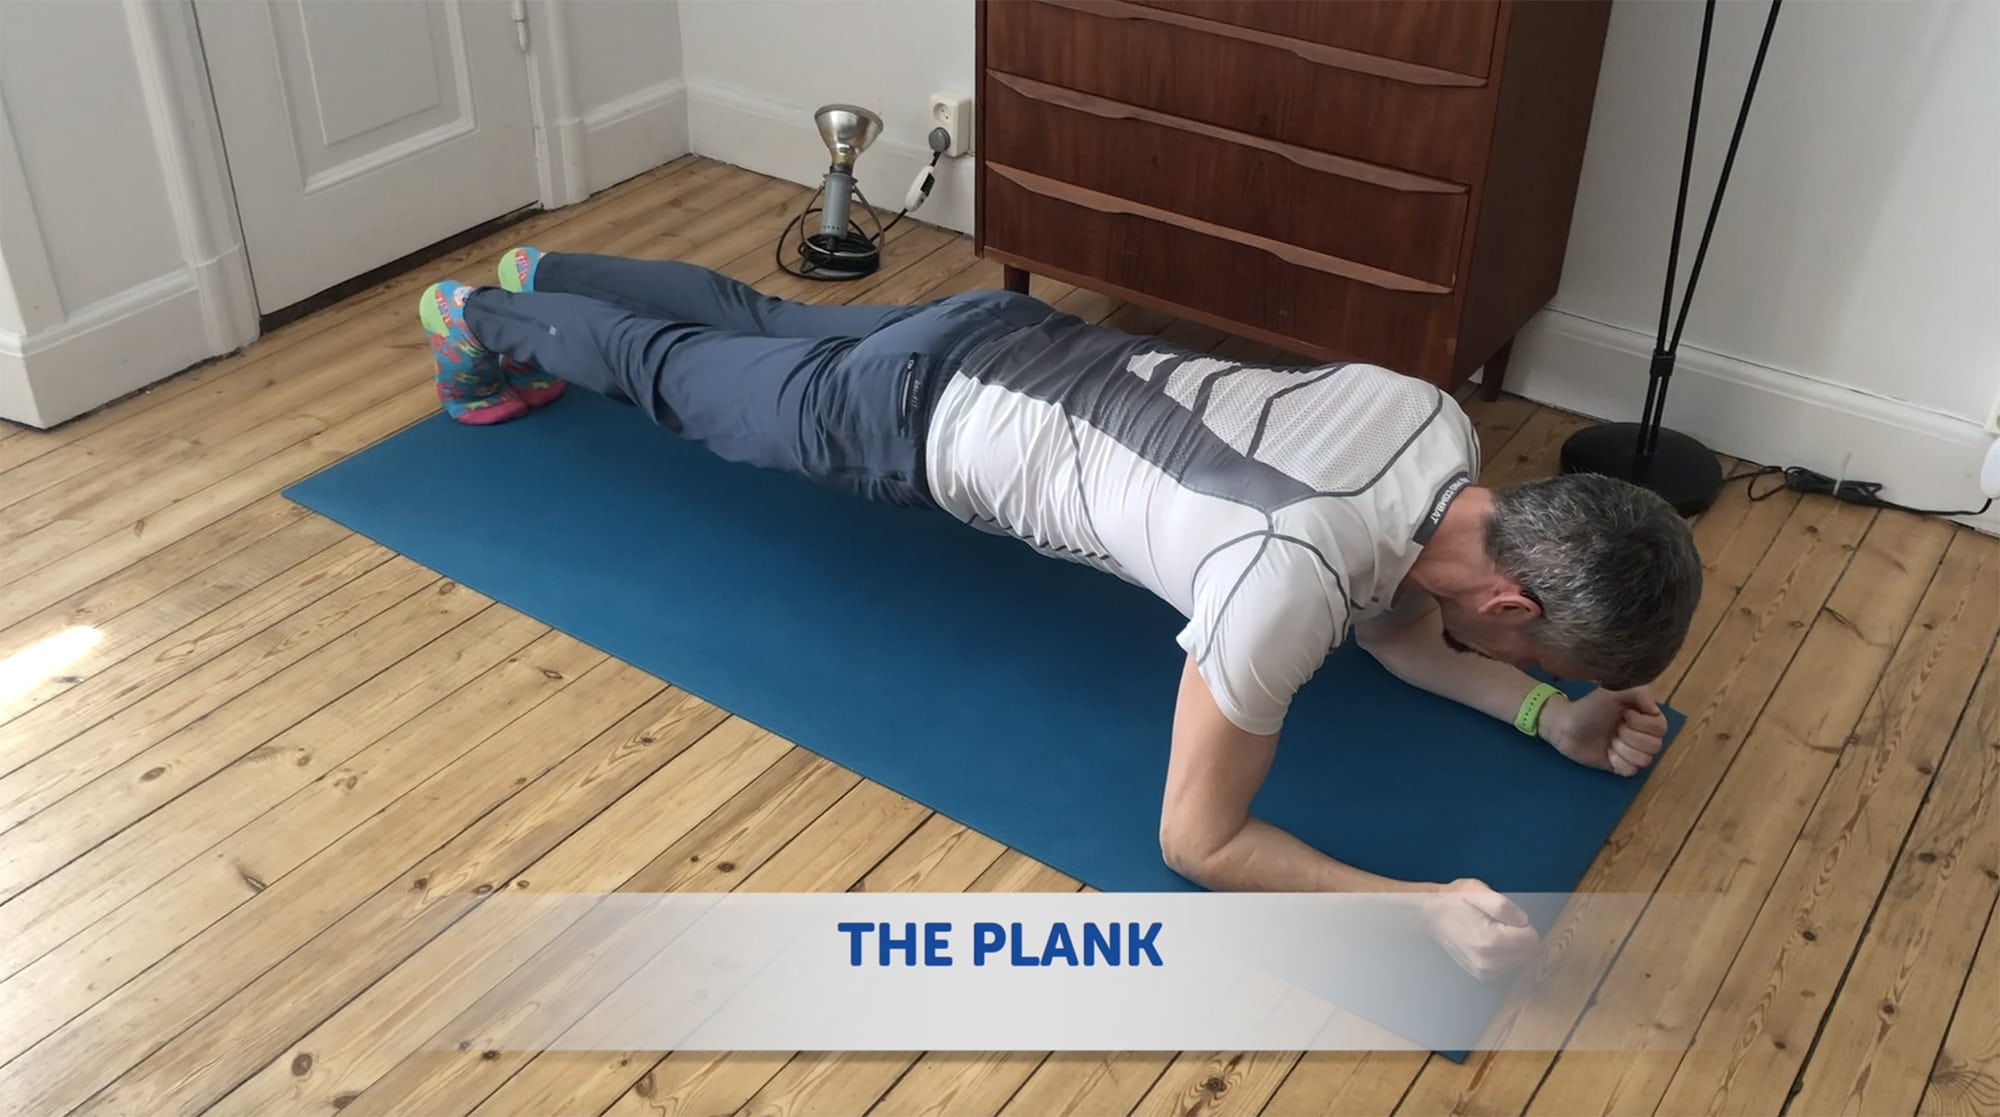 The Plank is harder than it looks